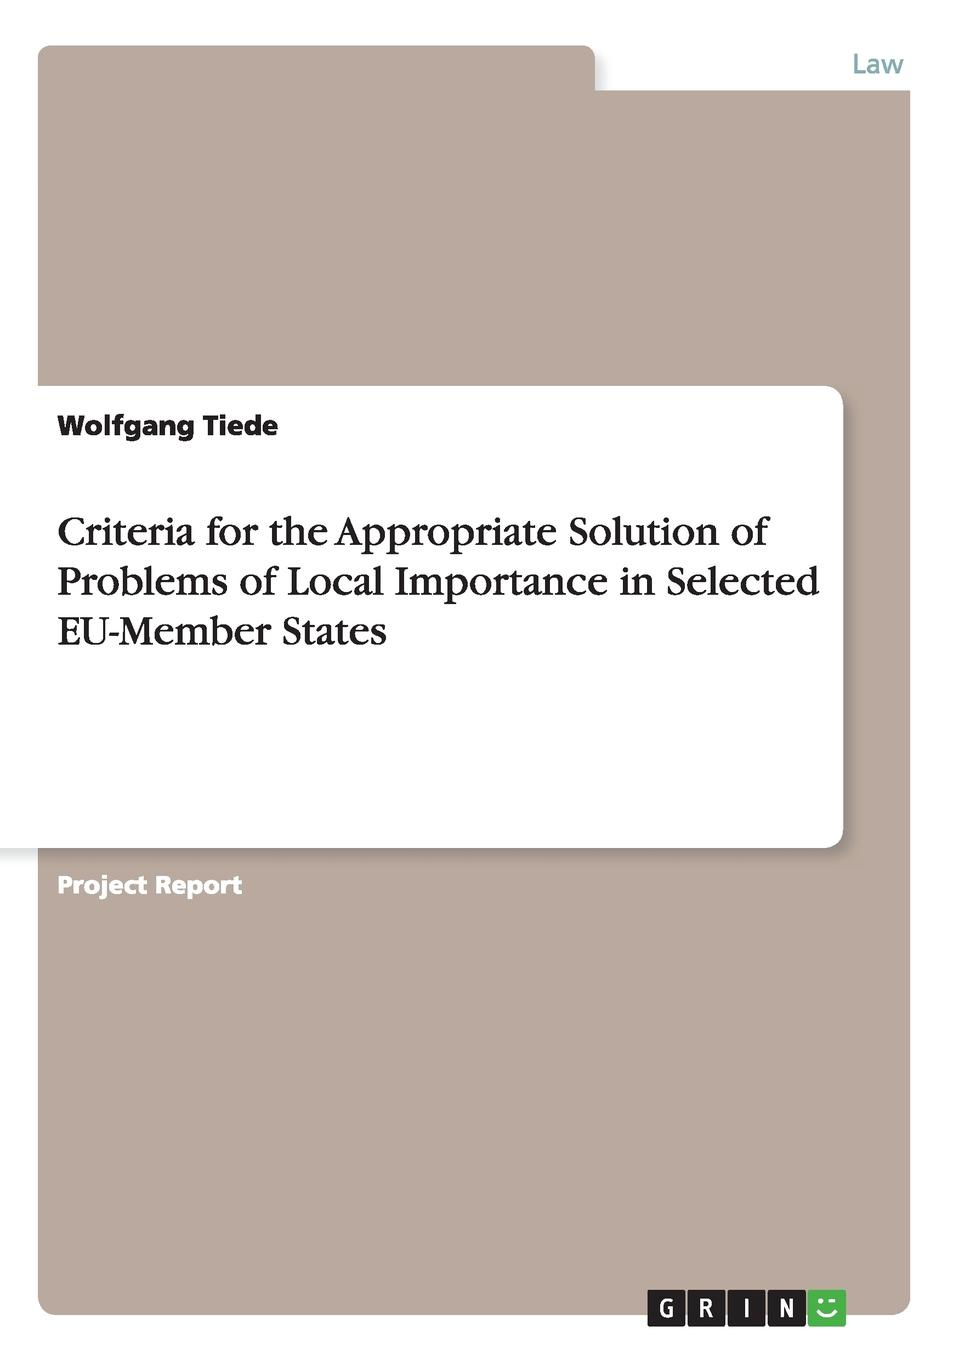 Wolfgang Tiede Criteria for the Appropriate Solution of Problems of Local Importance in Selected EU-Member States local remedies in international law